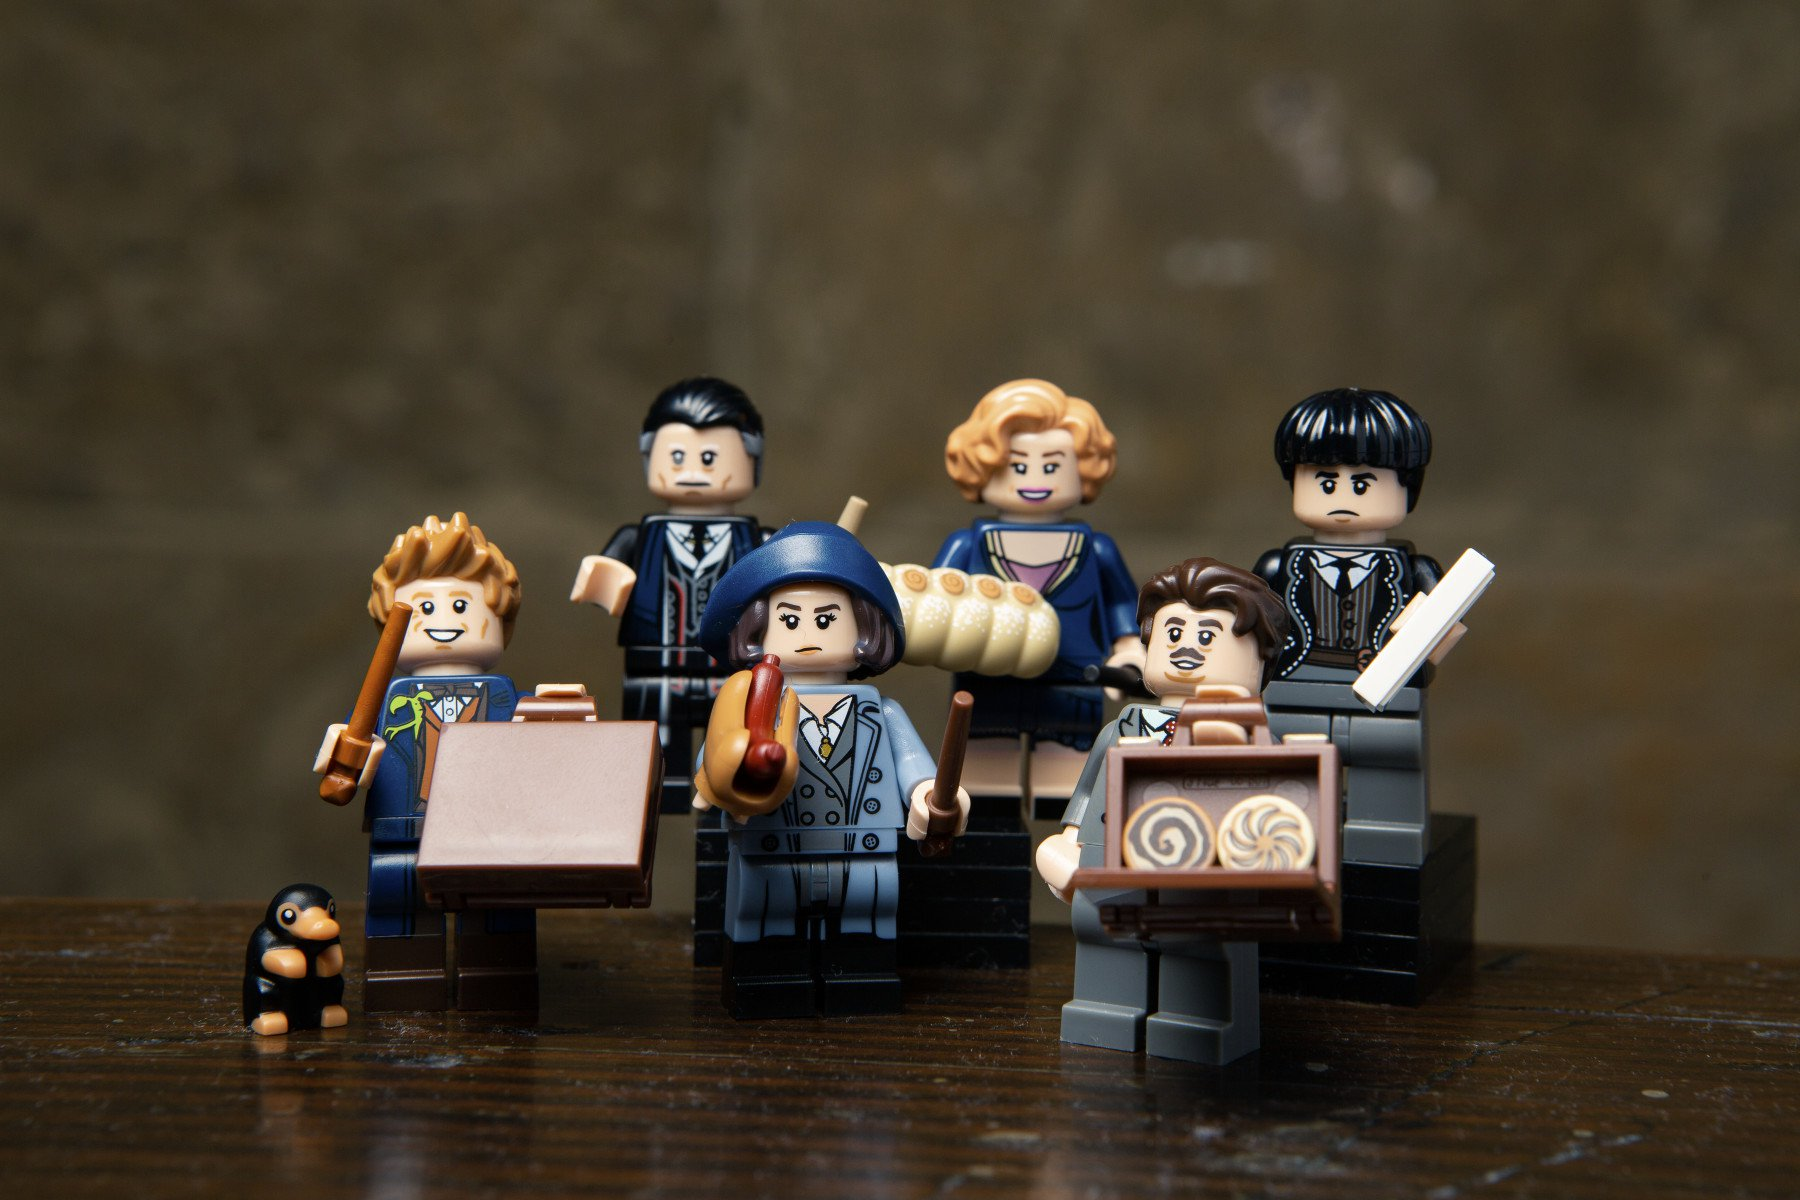 LEGO_WWHP_harry potter cmf 71022 06